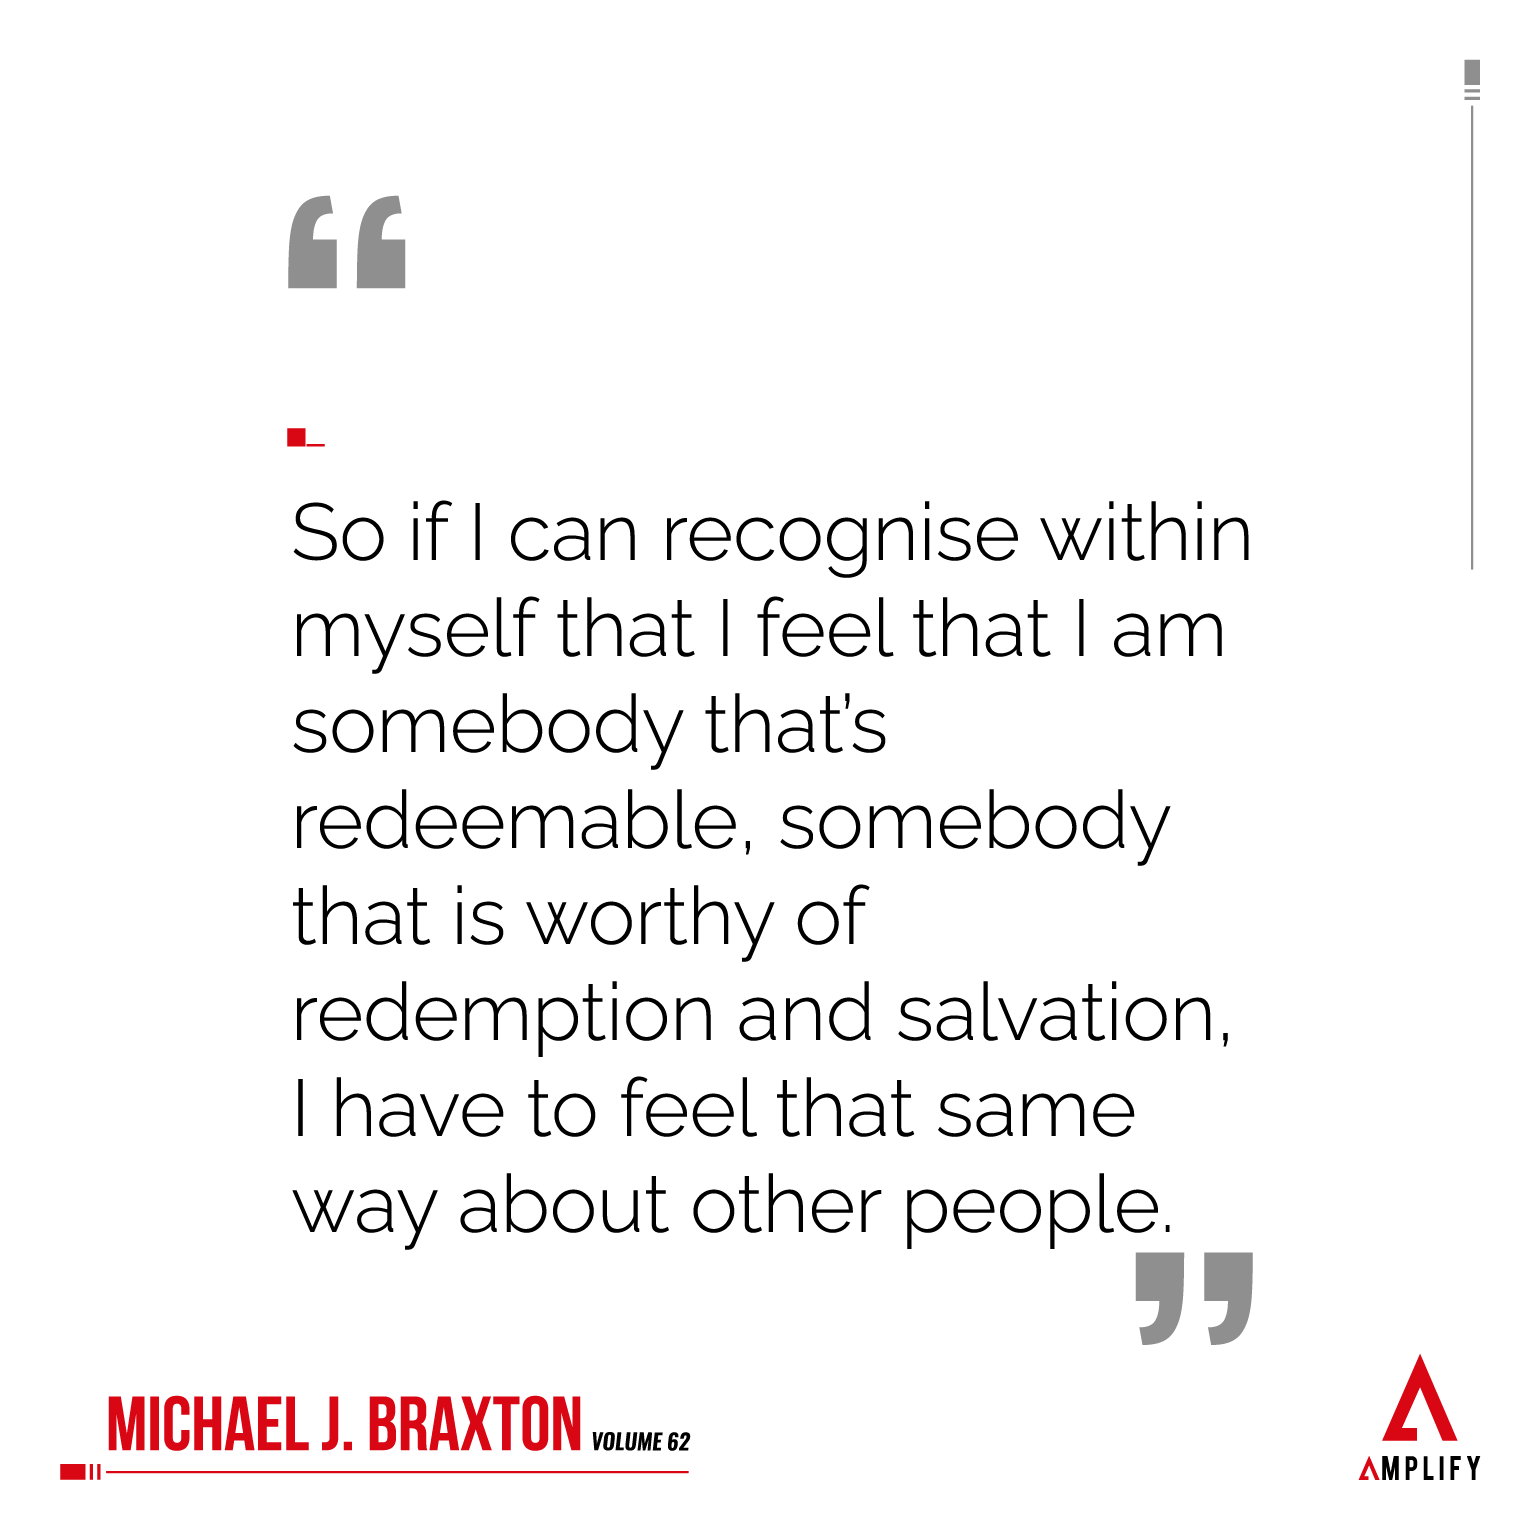 Quote: So if I can recognise within myself that I feel that I am somebody that's redeemable, somebody that is worthy of redemption and salvation, I have to feel that same way about other people.